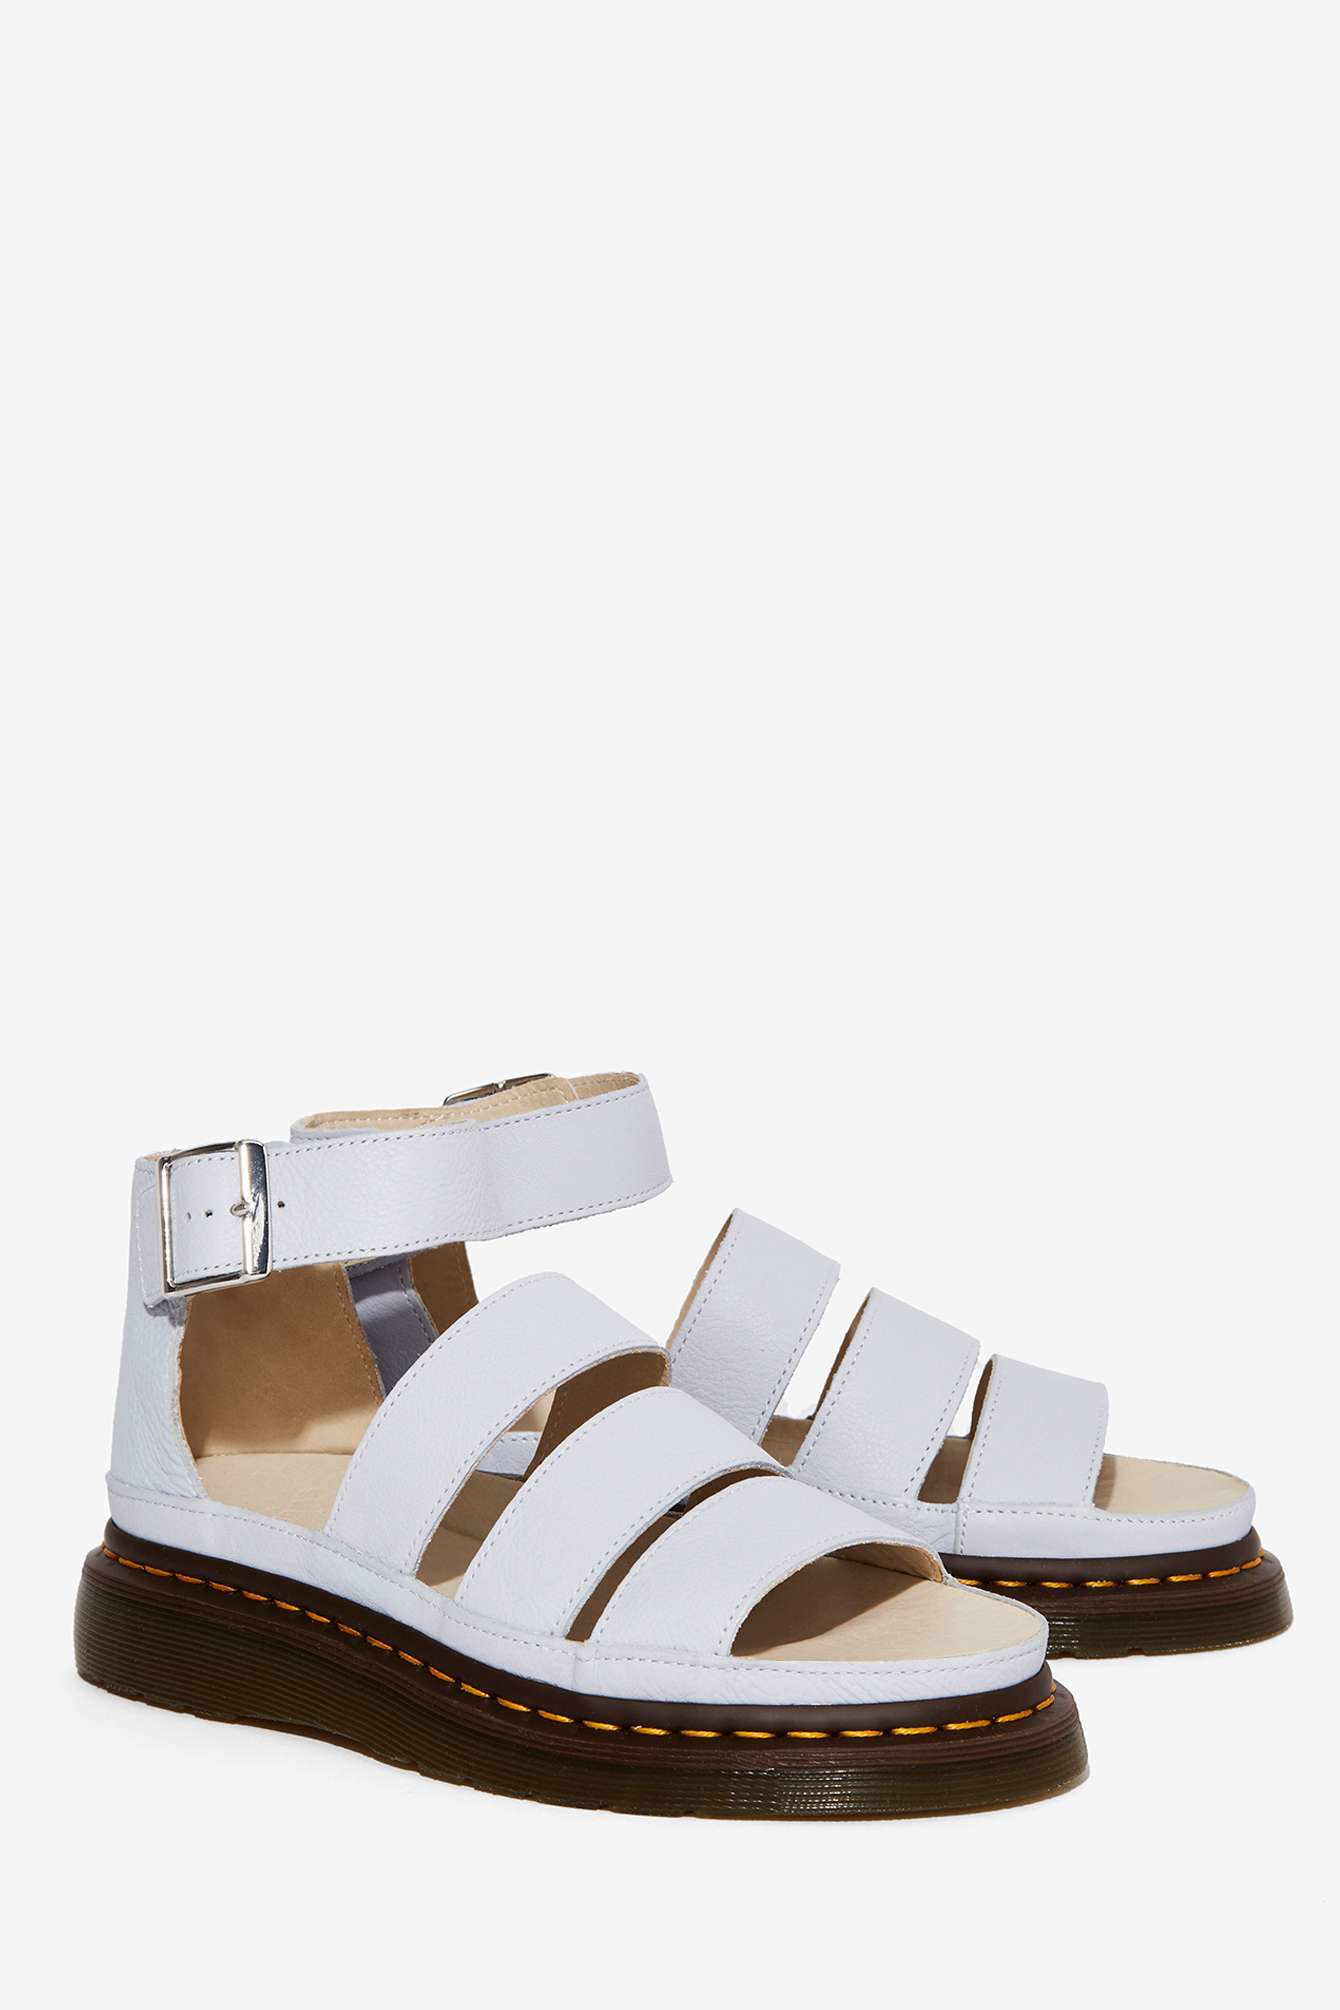 Dr Martens Clarissa Leather Sandal In White Lyst